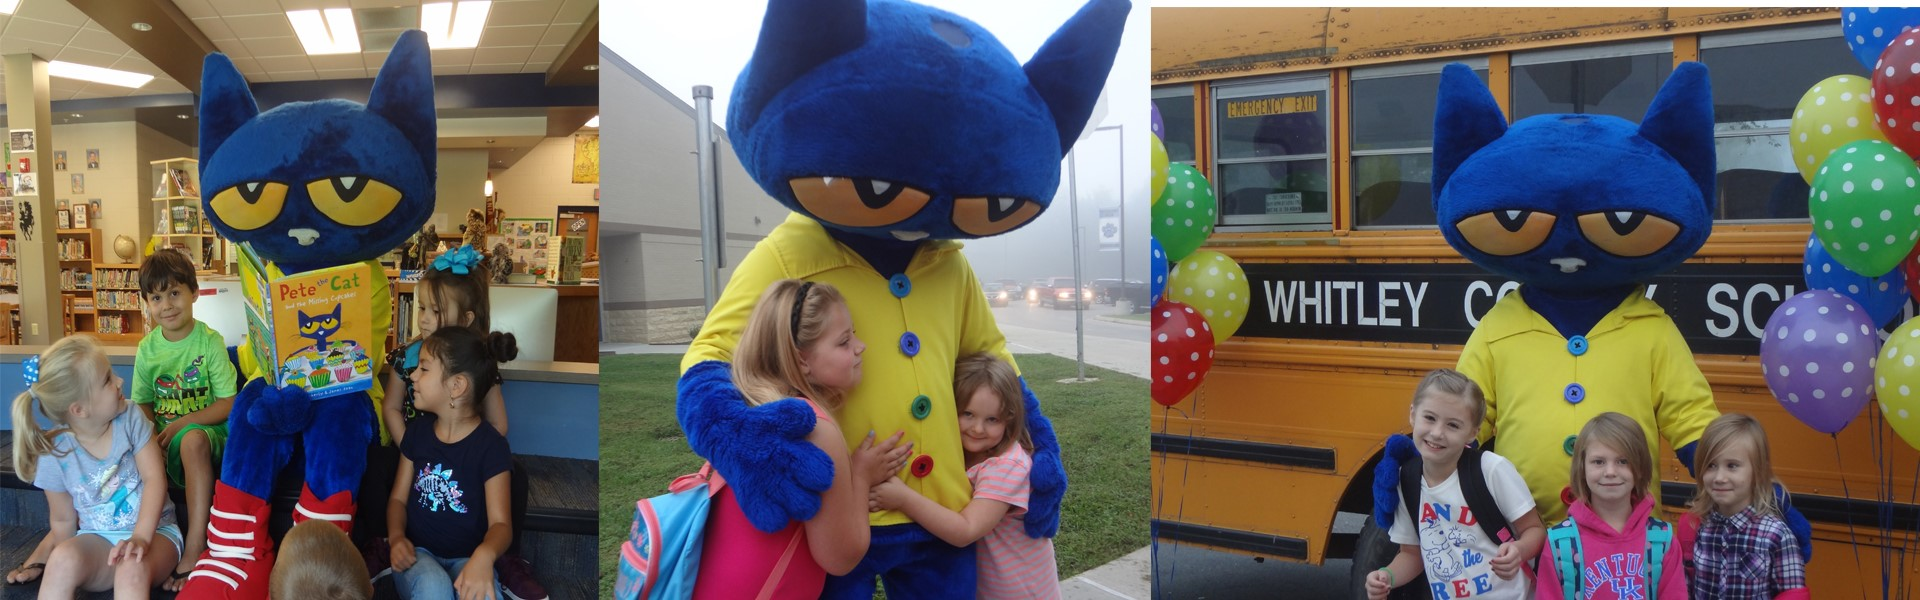 Pete the Cat visits students at Pleasant View